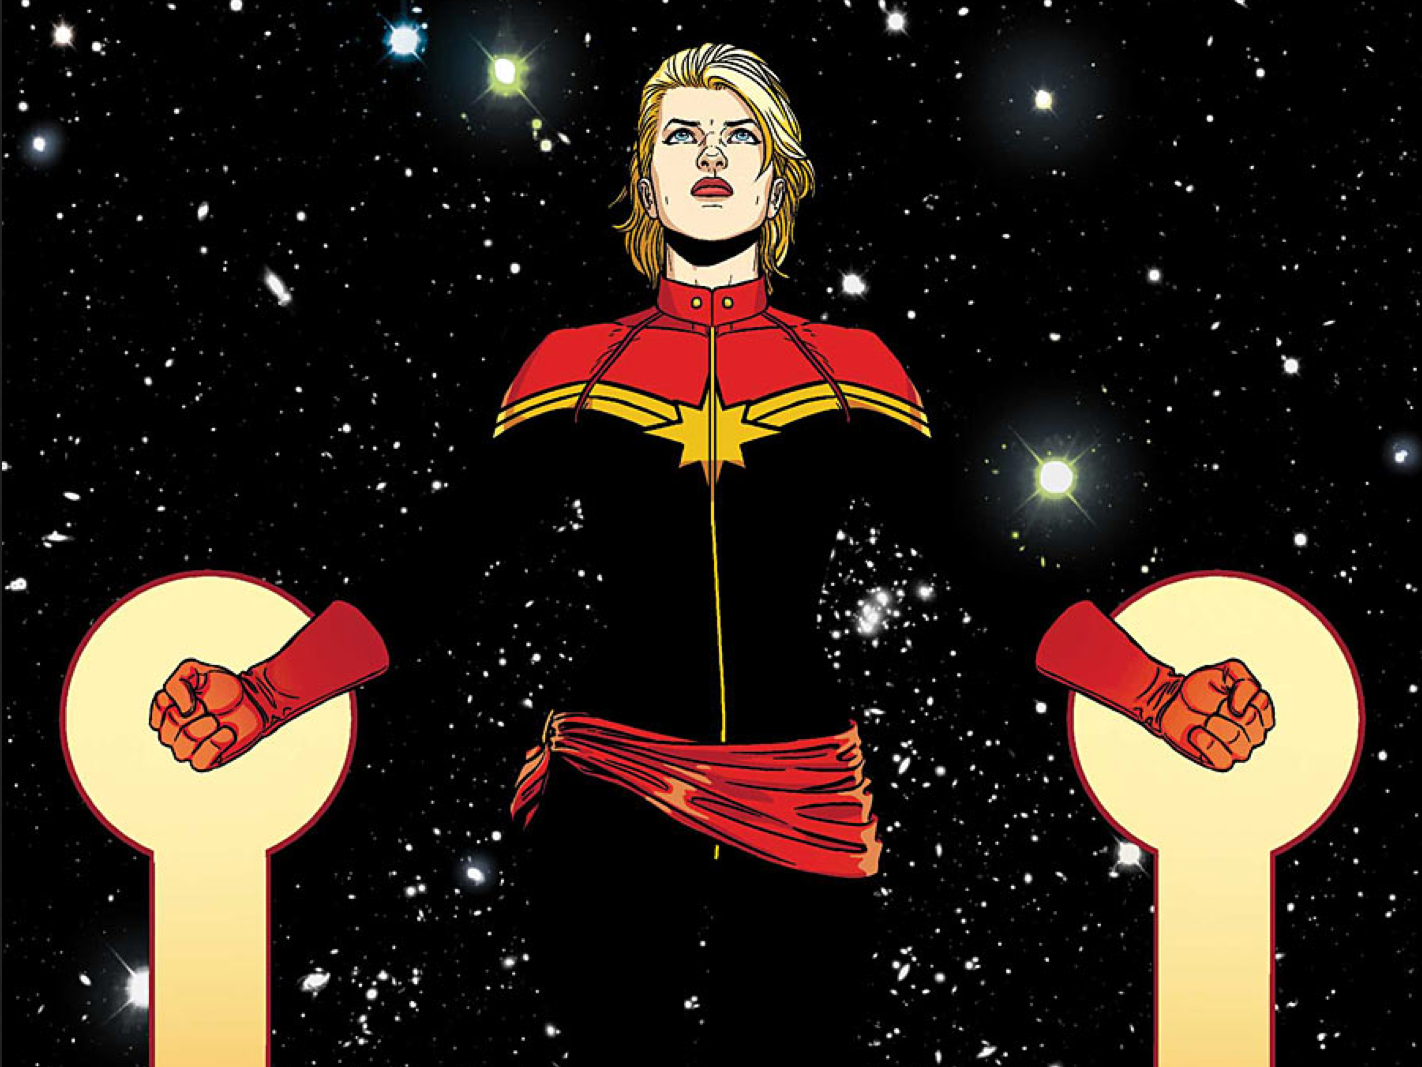 'Captain Marvel' Movie Could Explore Alcoholism, Trauma, and Kamala Khan